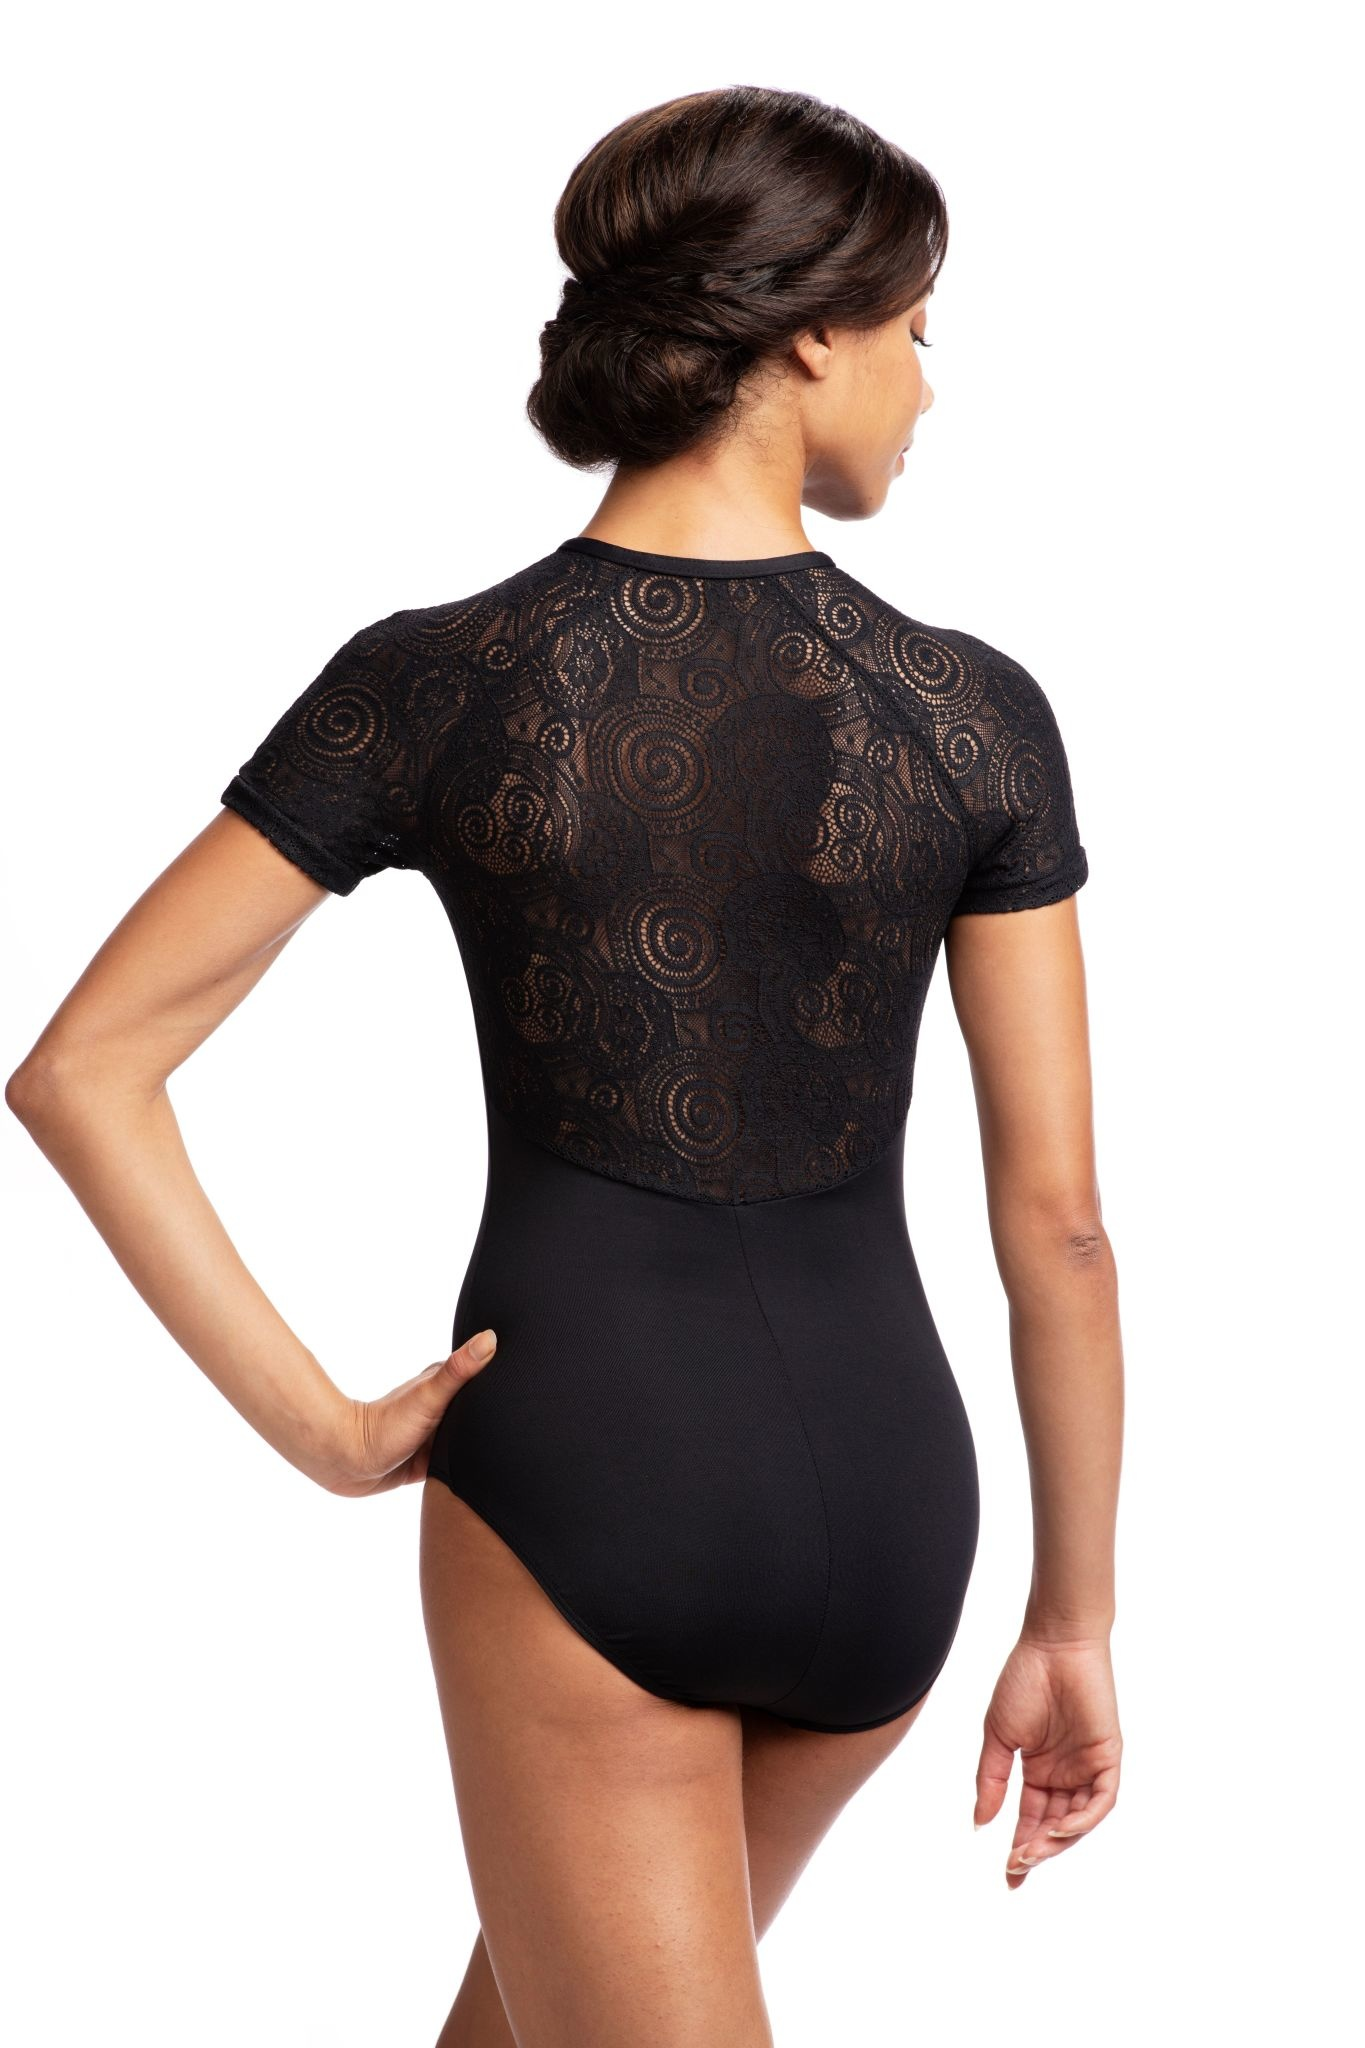 AinslieWear 1068LL-Emily Short Sleeve With Lola Lace